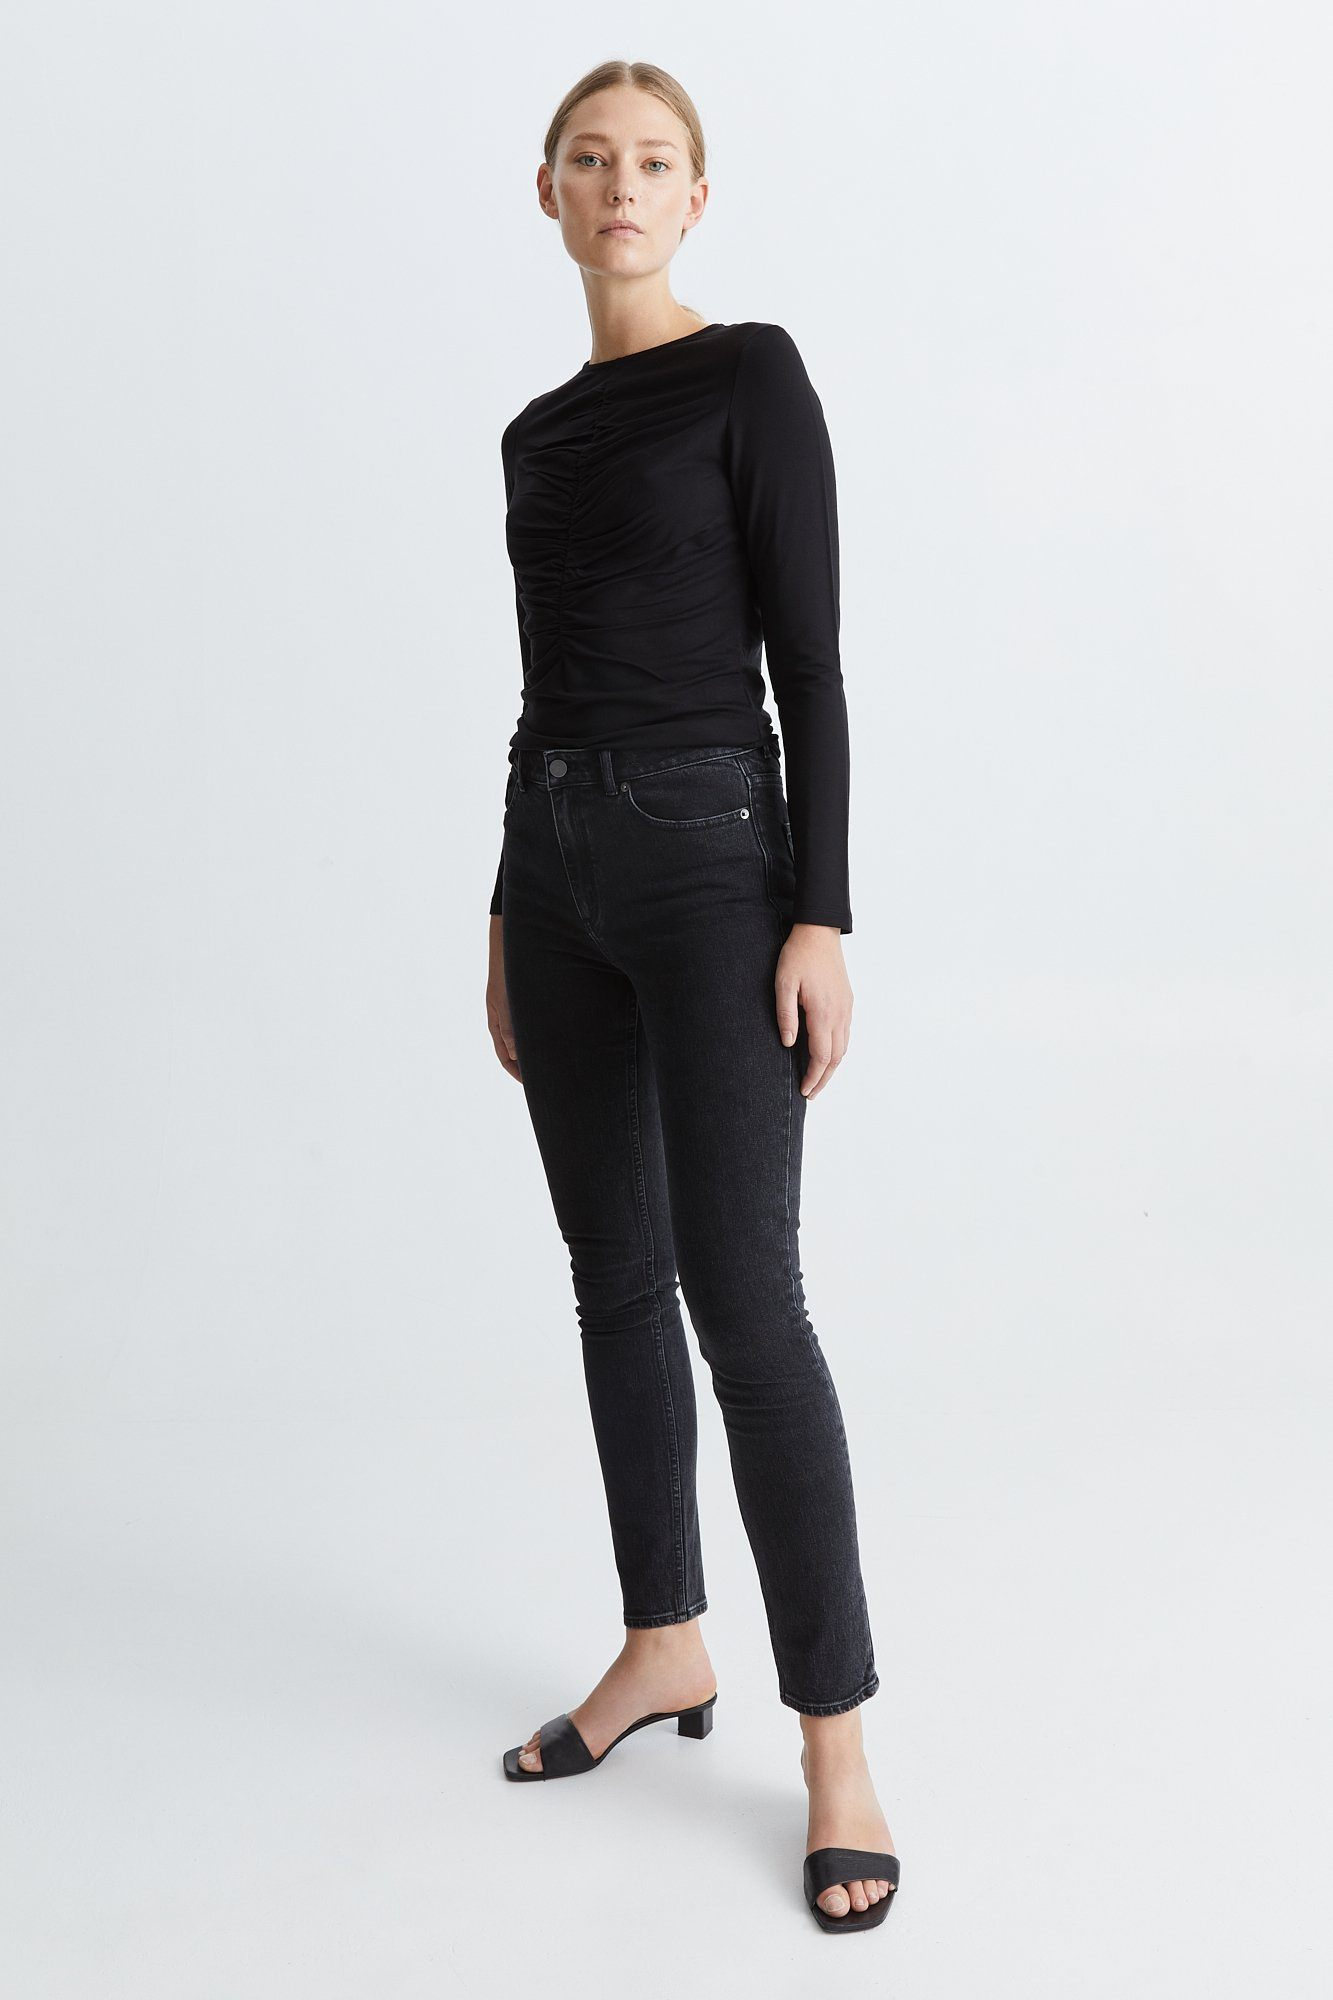 CATHY TOP - BLACK Top Stylein